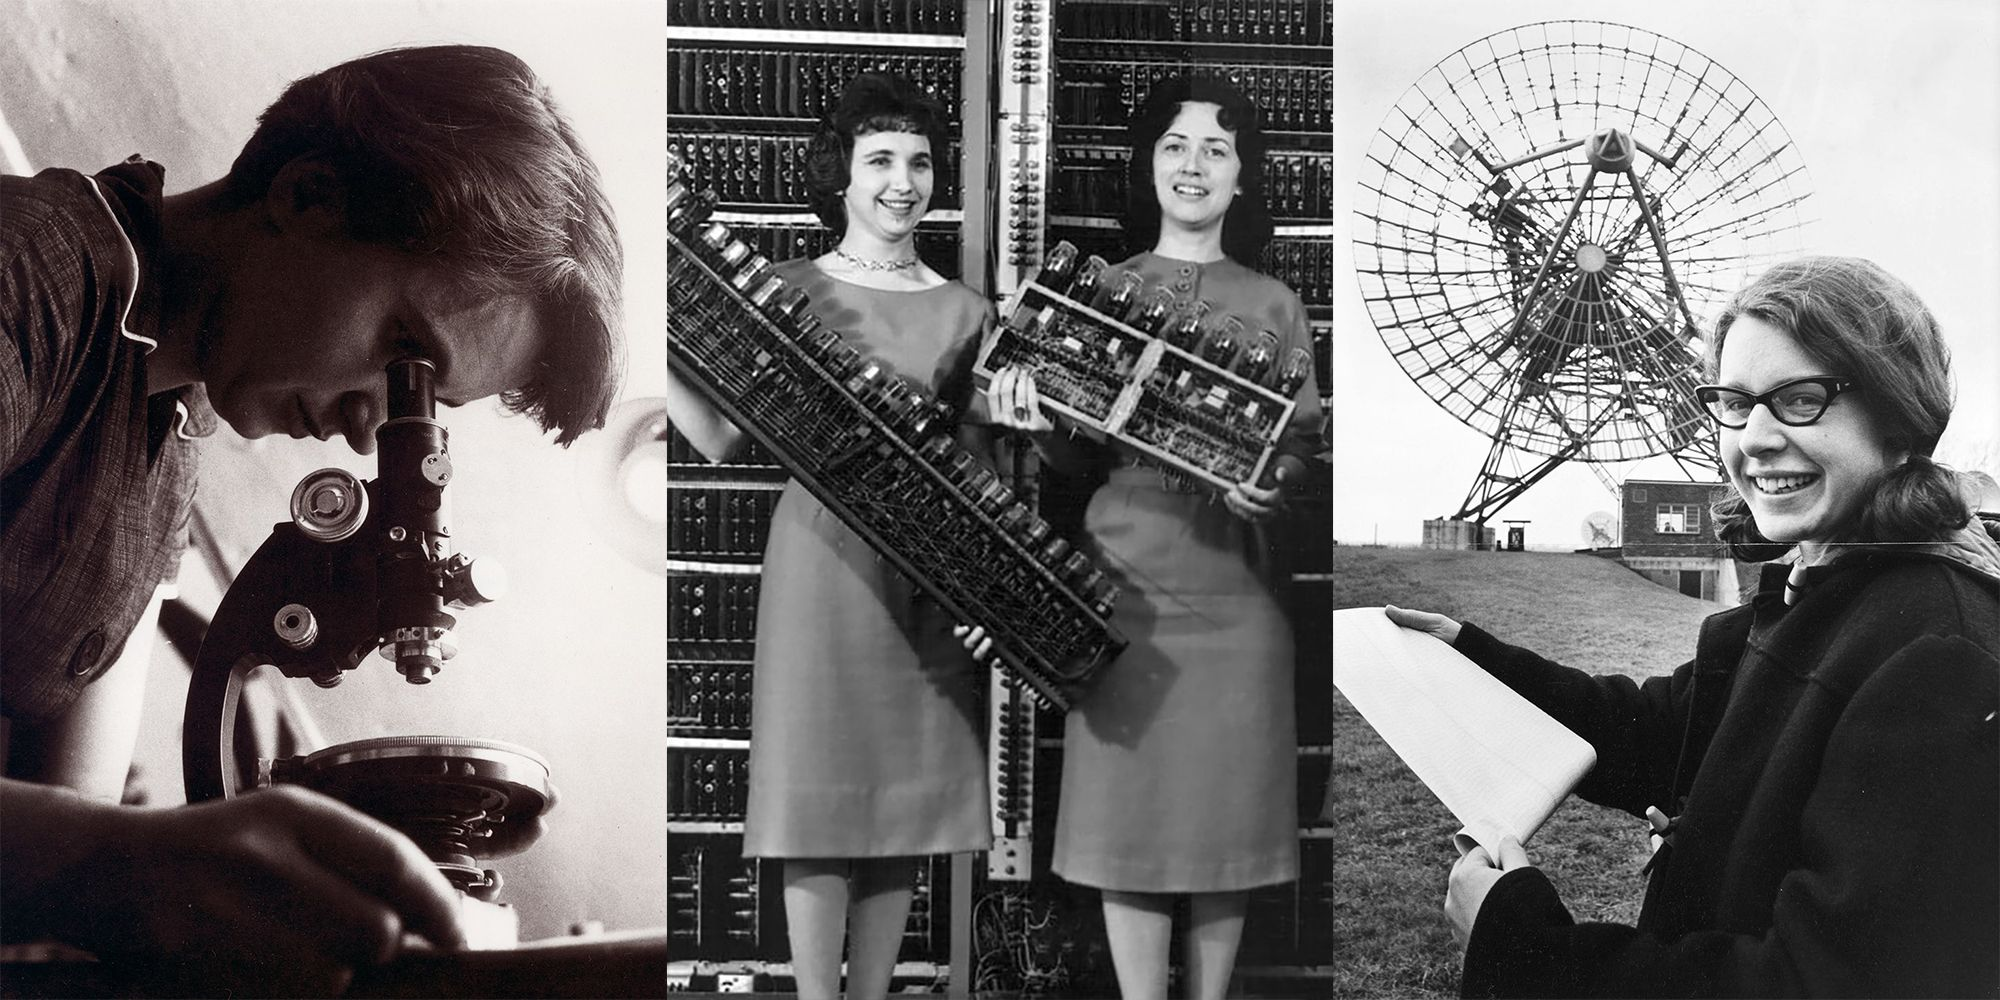 19 Groundbreaking Discoveries by Women That Were Credited to Men